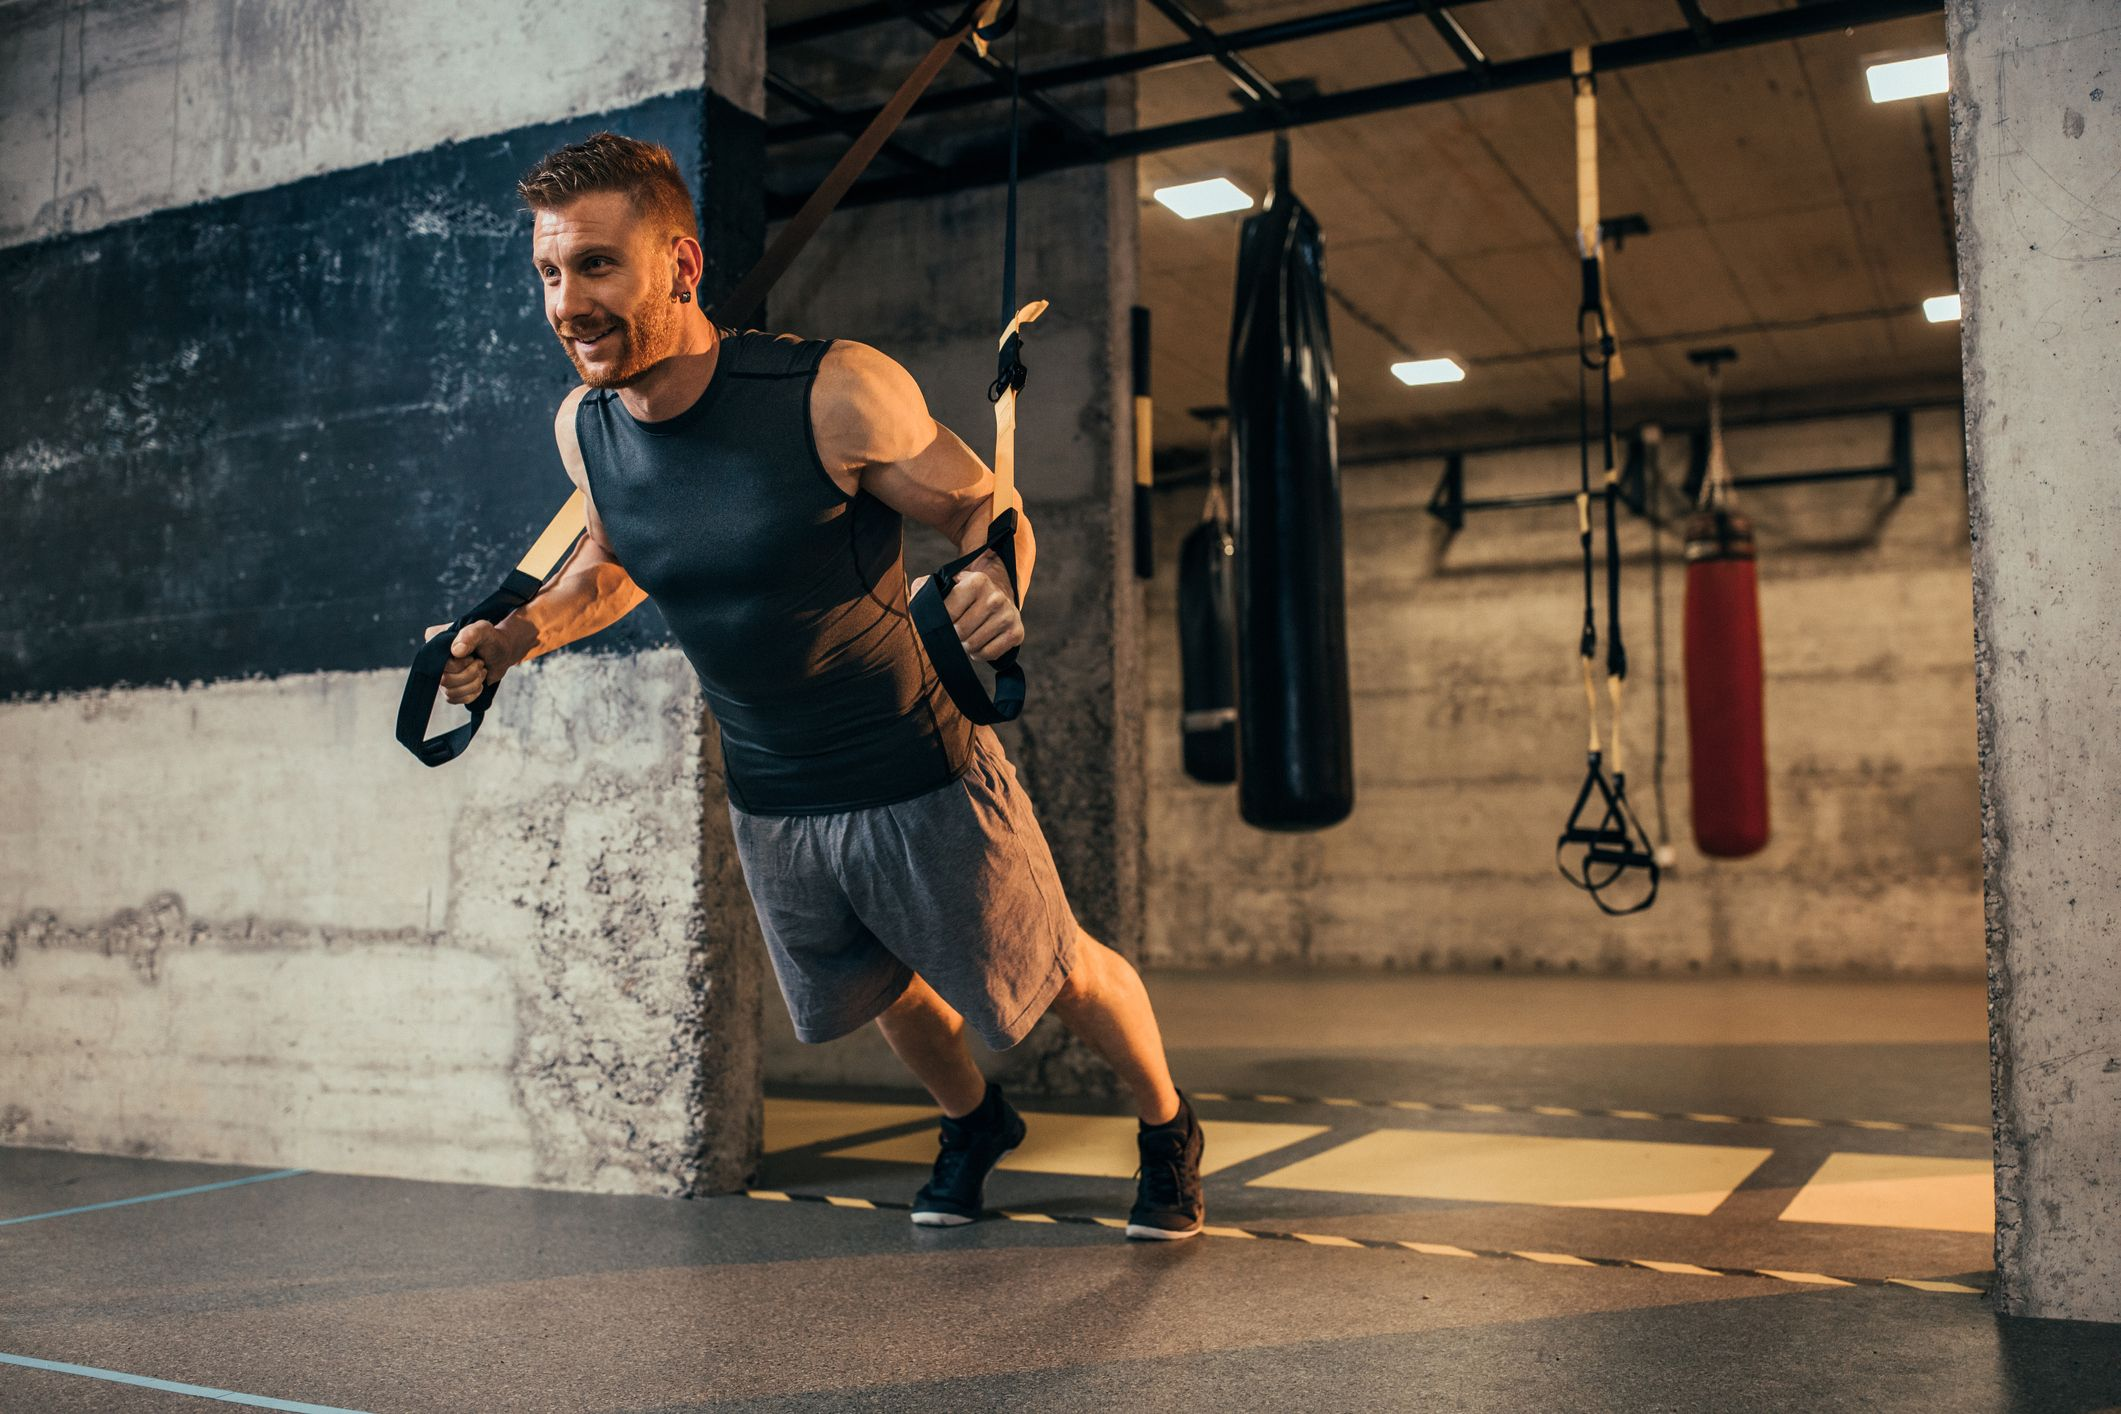 4 Ways to Get More from TRX Training